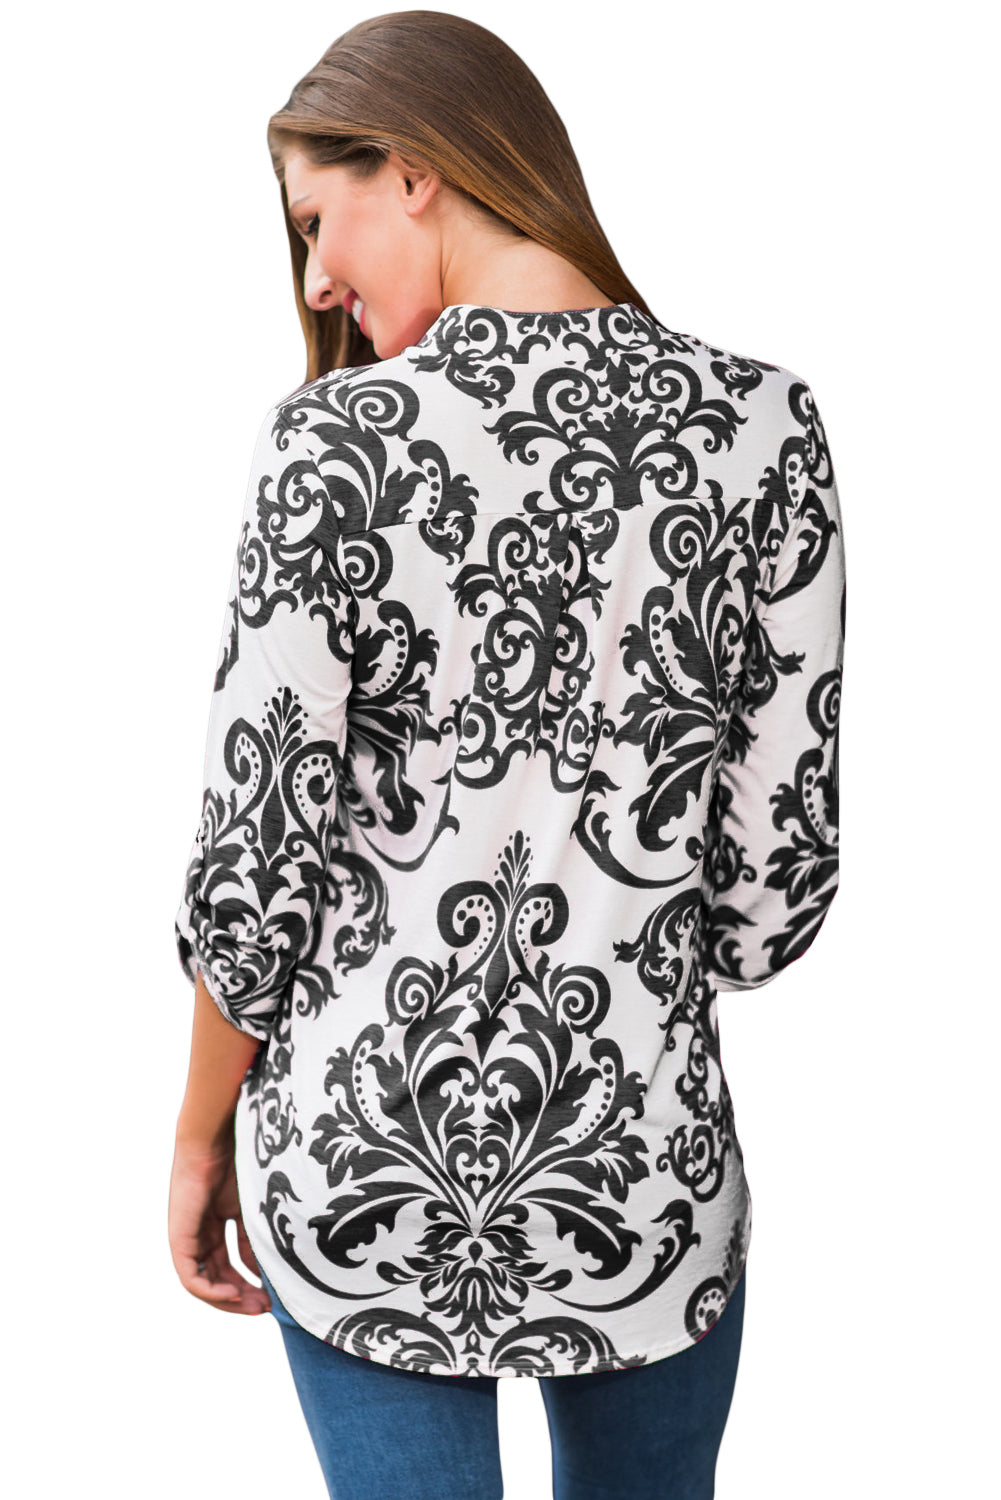 Her Fashion Black Damask Print Slight Collar Stylish V Neck Blouse